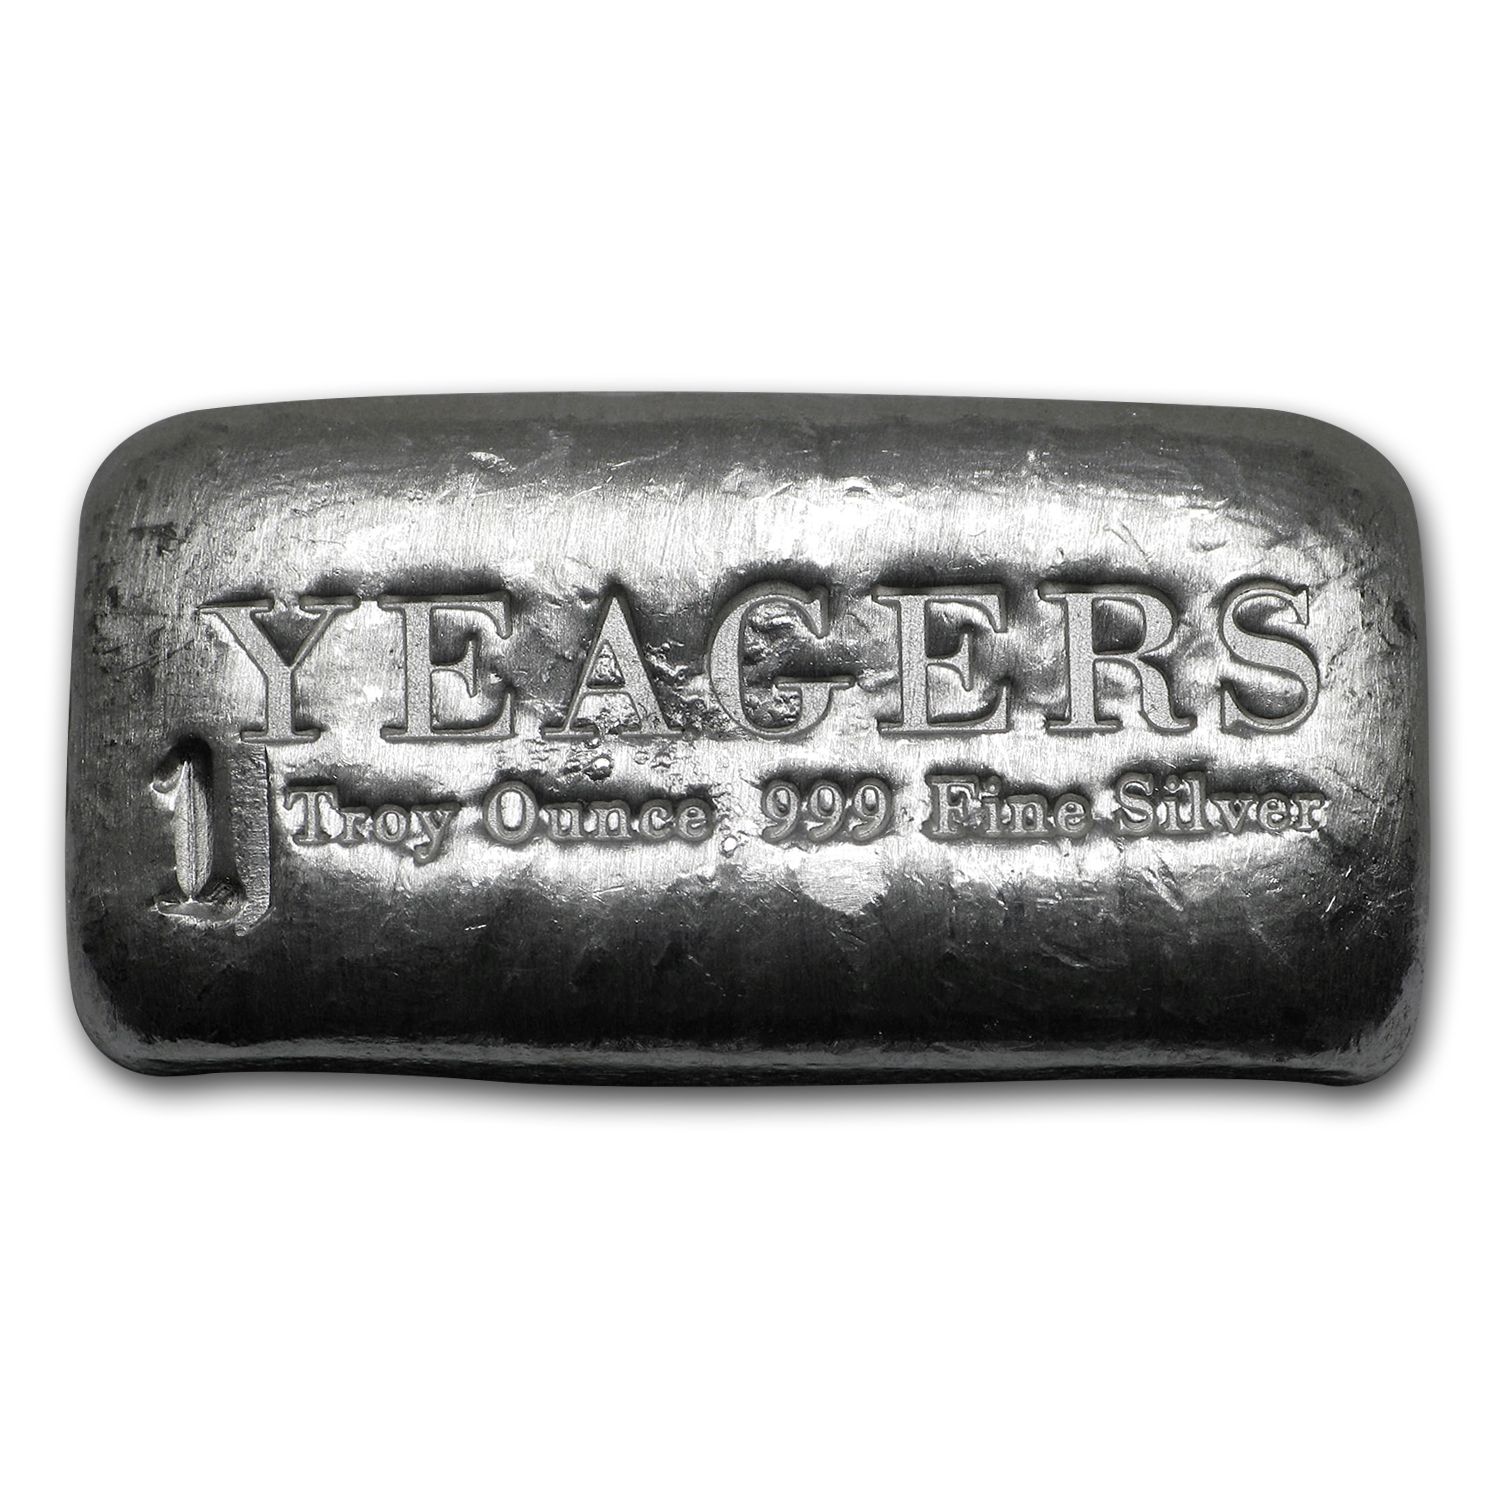 1 oz Silver Bar - Yeager Poured Silver (Bare Bones Bullion)